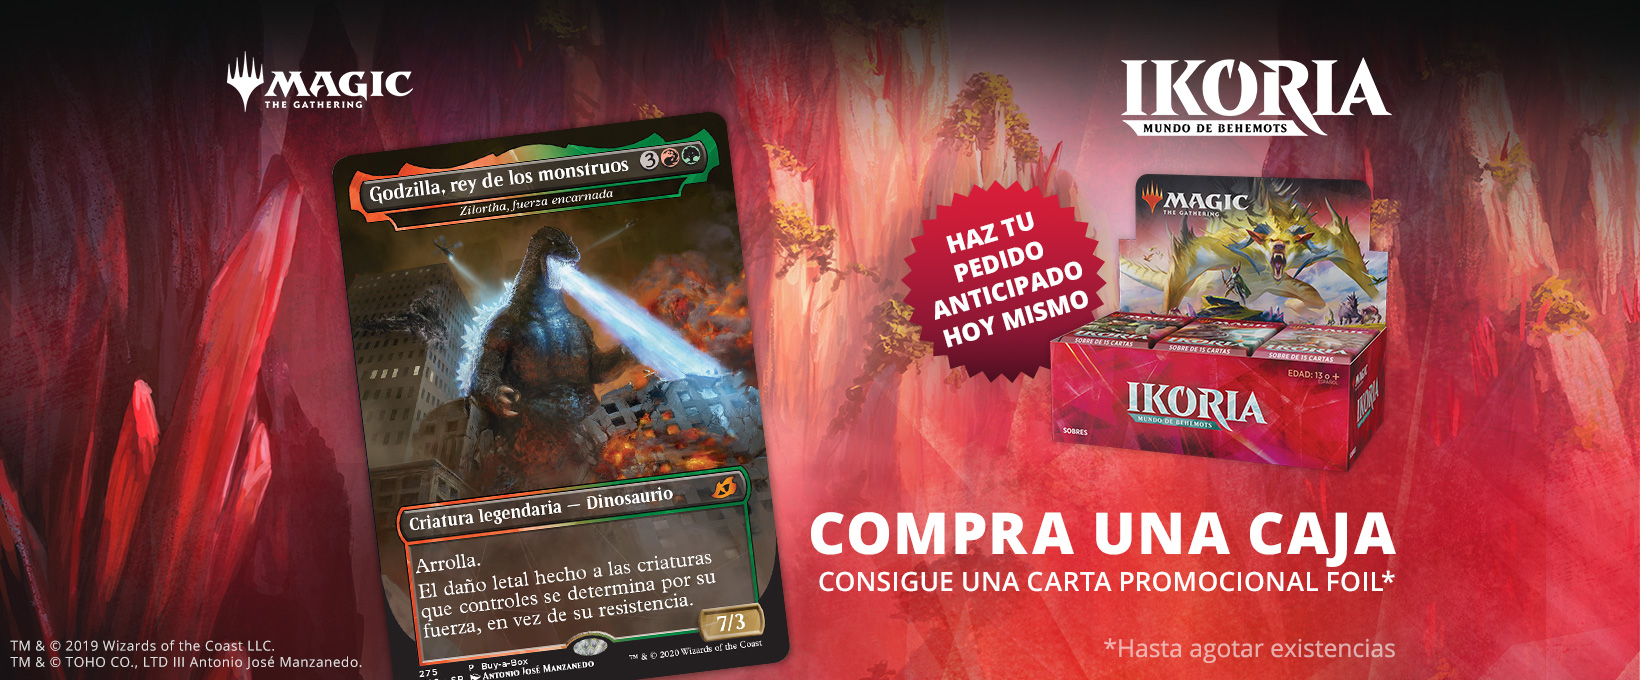 Ikoria mundo de behemots juegoMagic the gathering